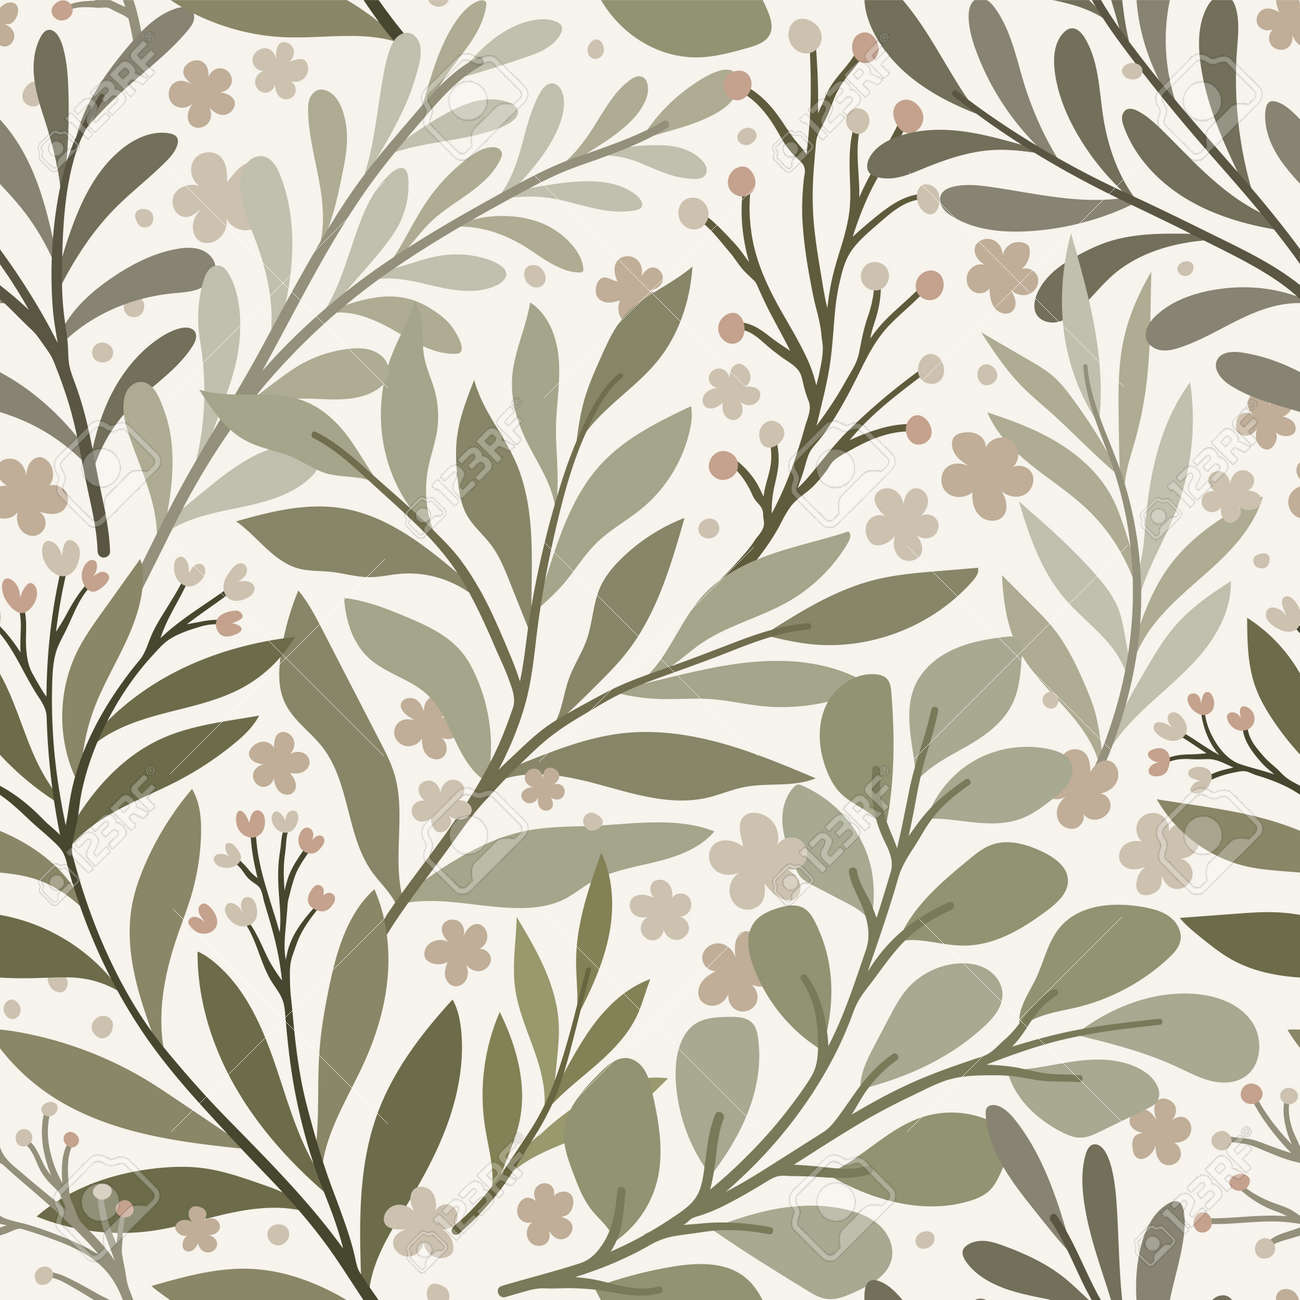 Vector hand drawn leaves seamless pattern. Abstract trendy floral background. Repeatable texture. - 168264843